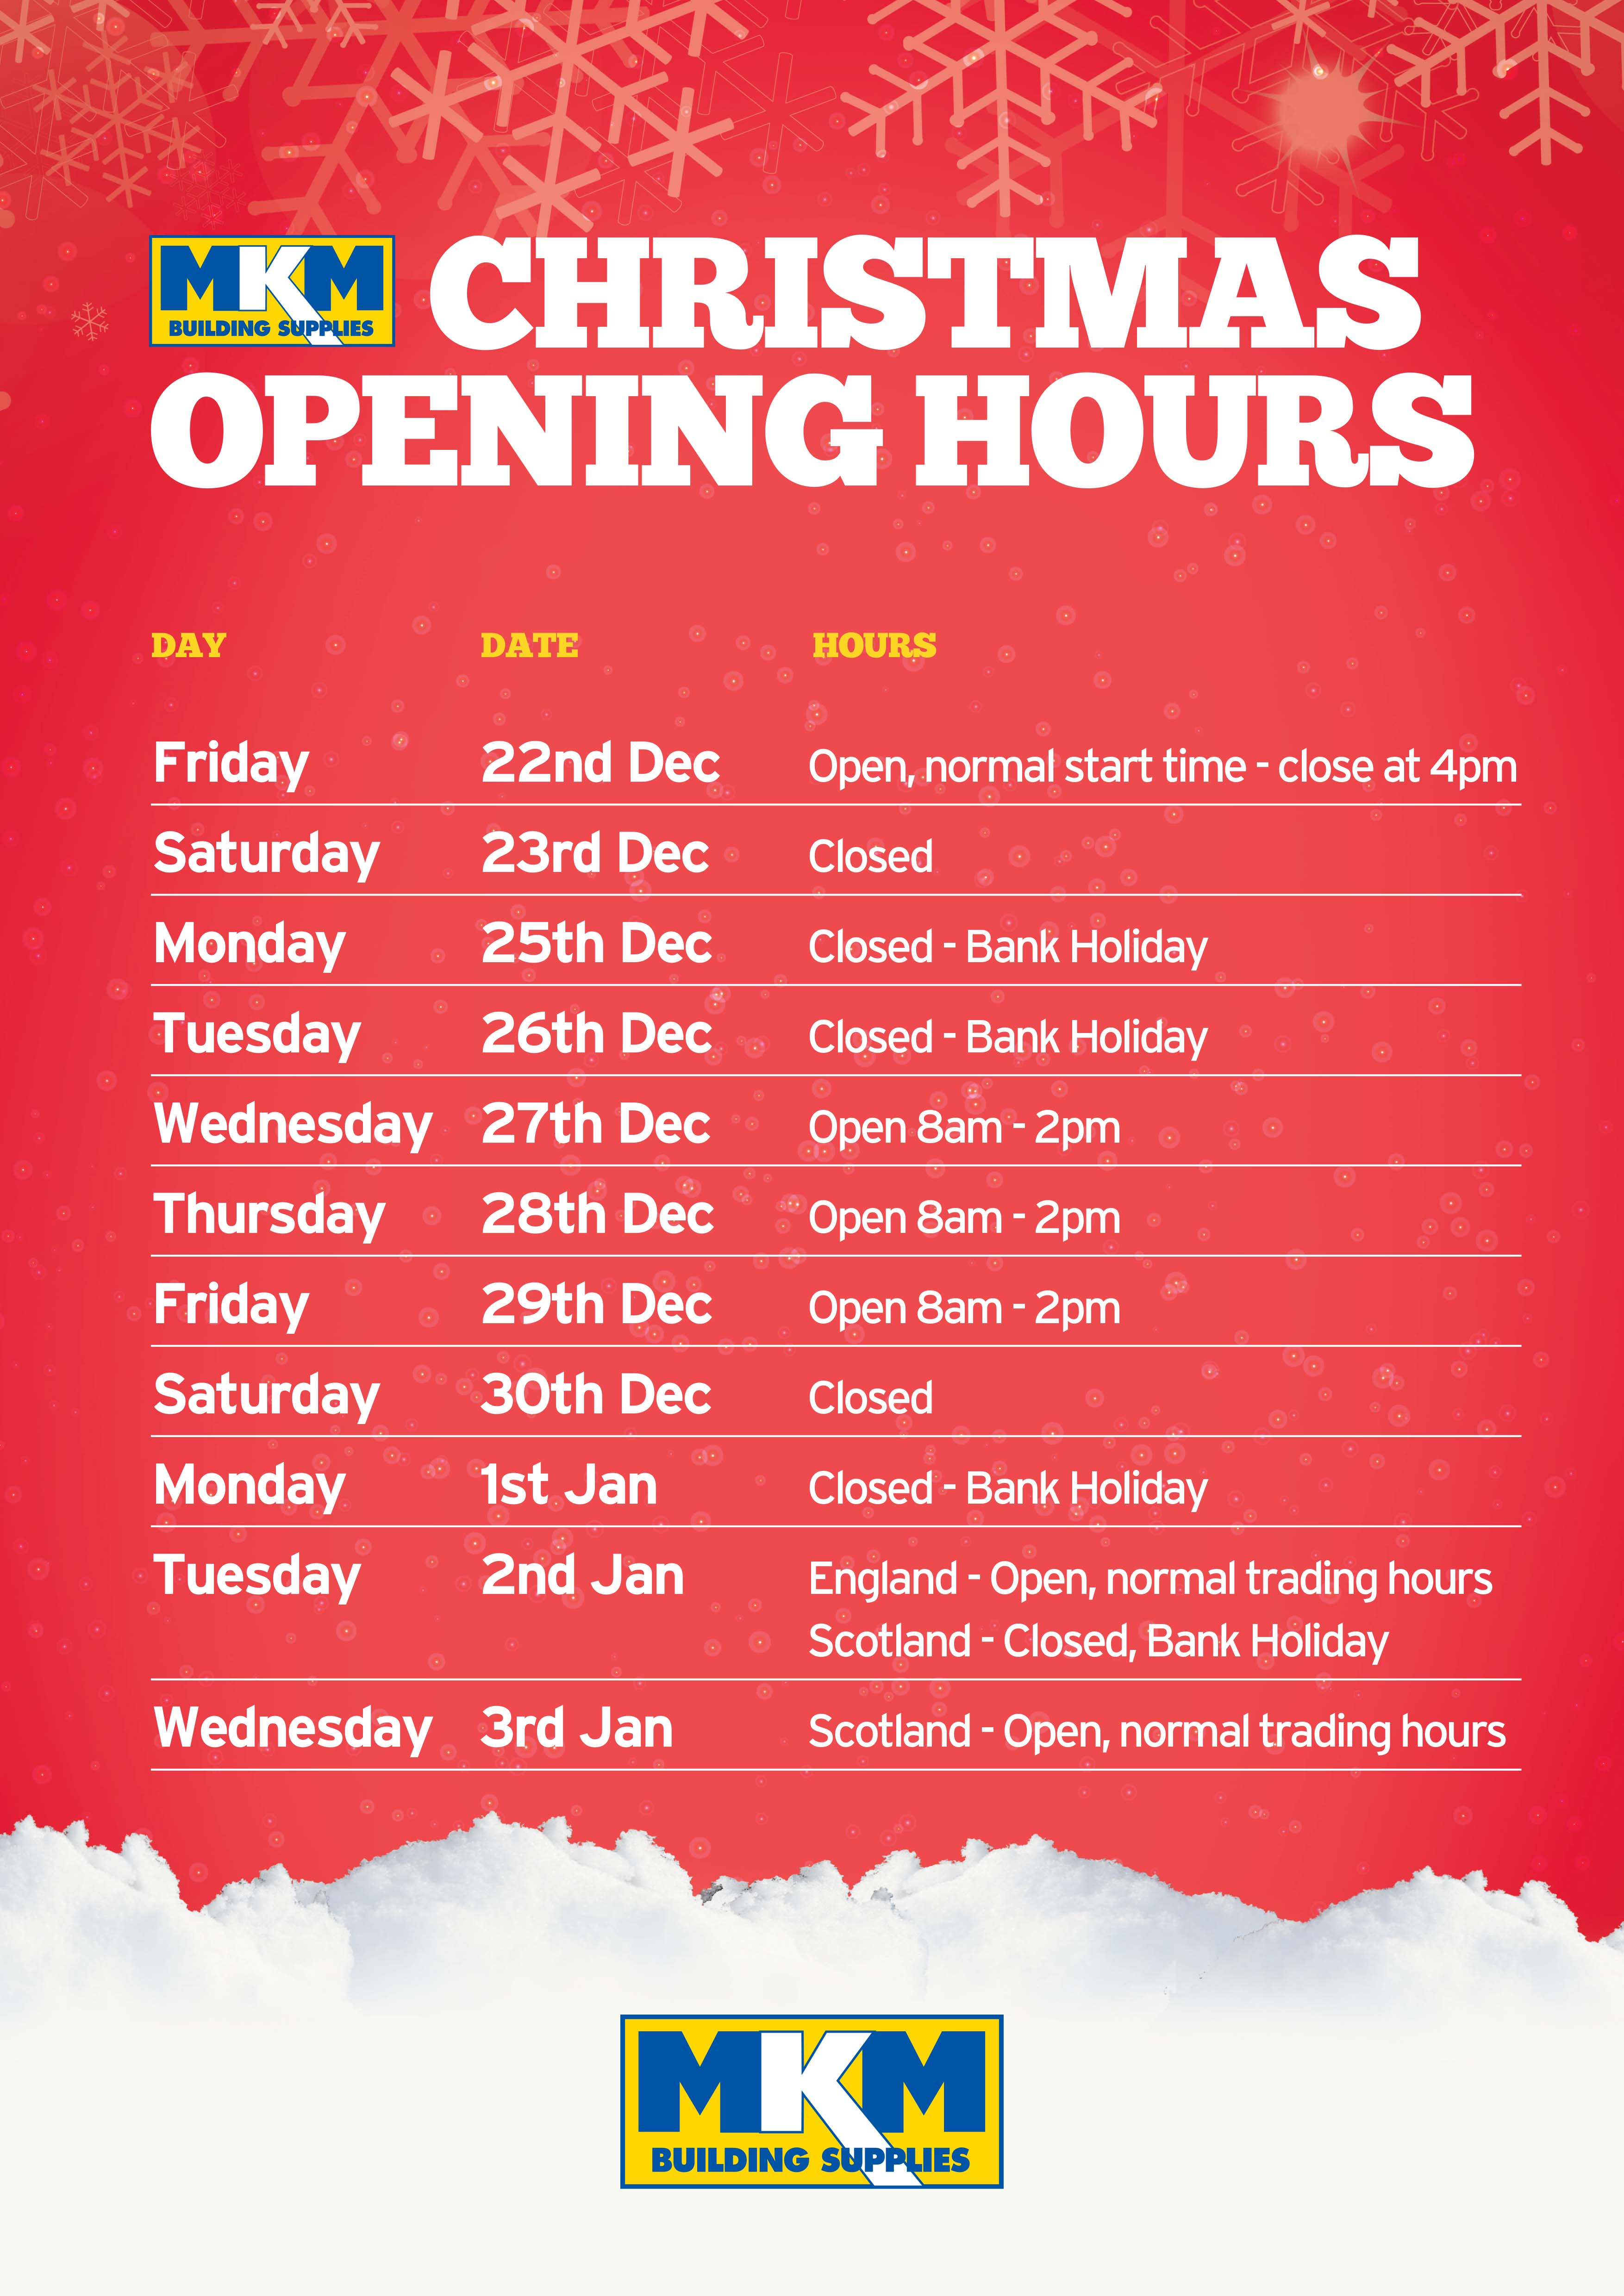 Christmas Opening Hours Poster 2017